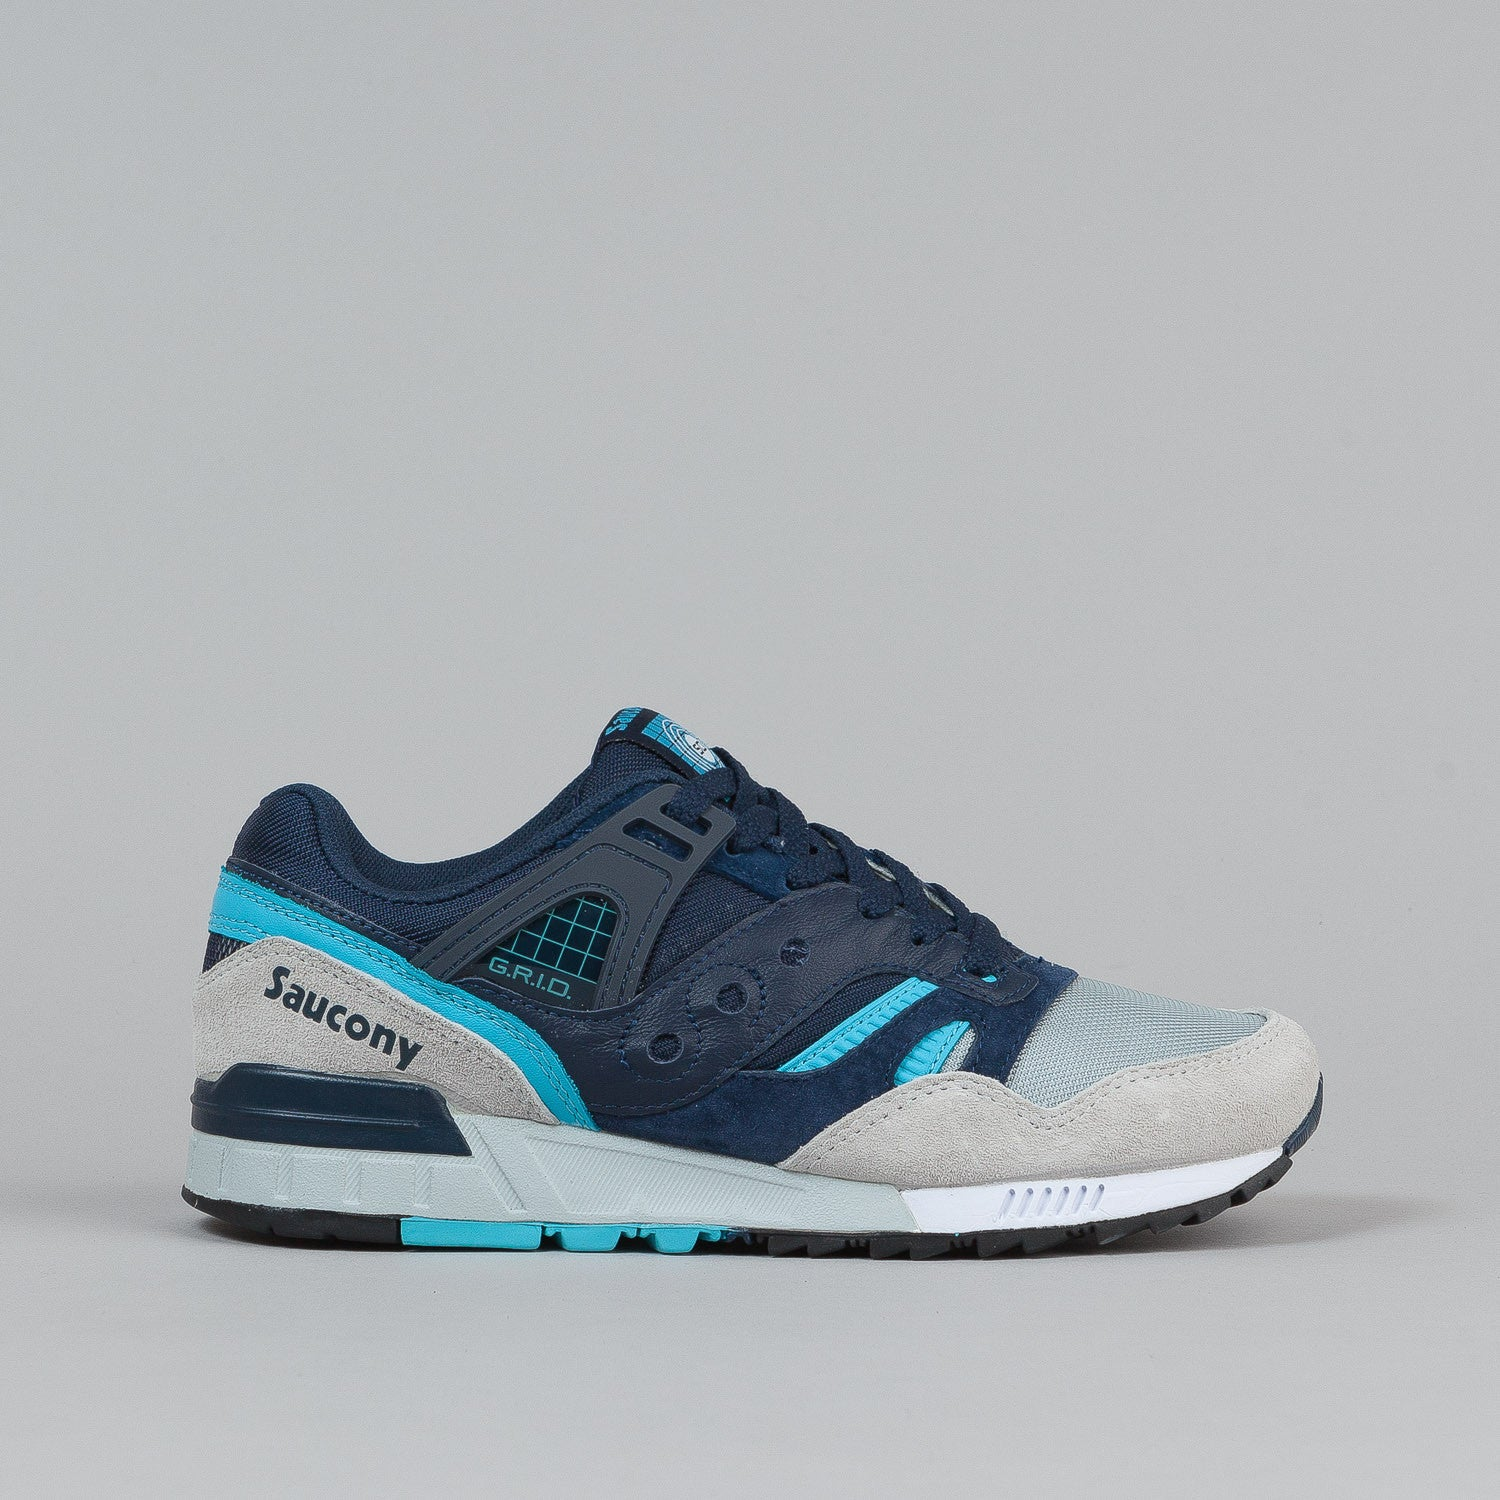 Saucony Grid SD Premium Shoes 'Grid Games' - Navy / Grey